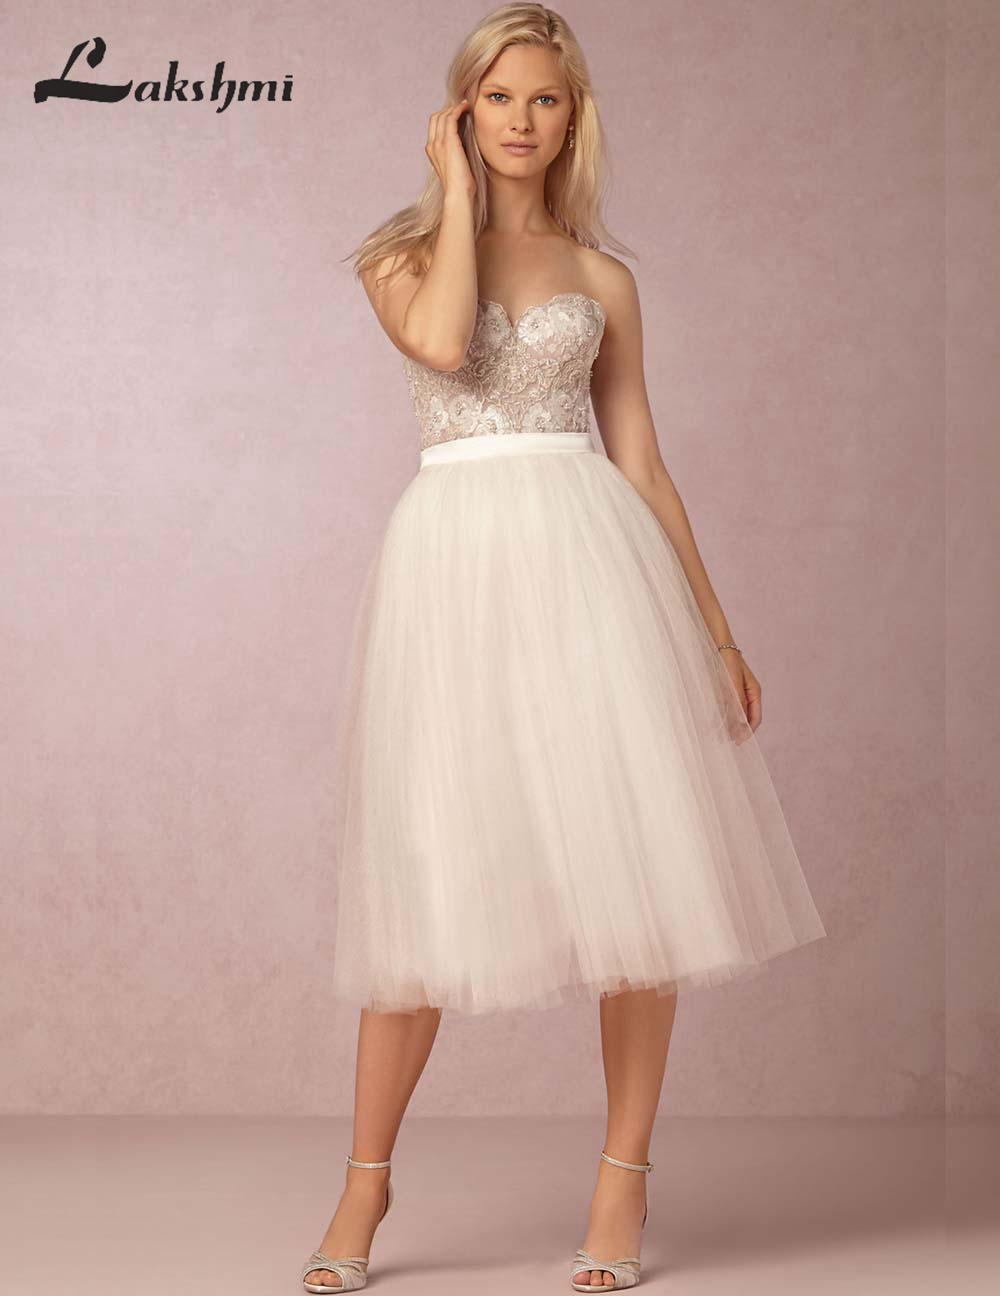 wedding dresses blush tulle wedding dress BLISS Monique Lhuillier Beaded Soft Tulle Dress with Tails In Stores Only